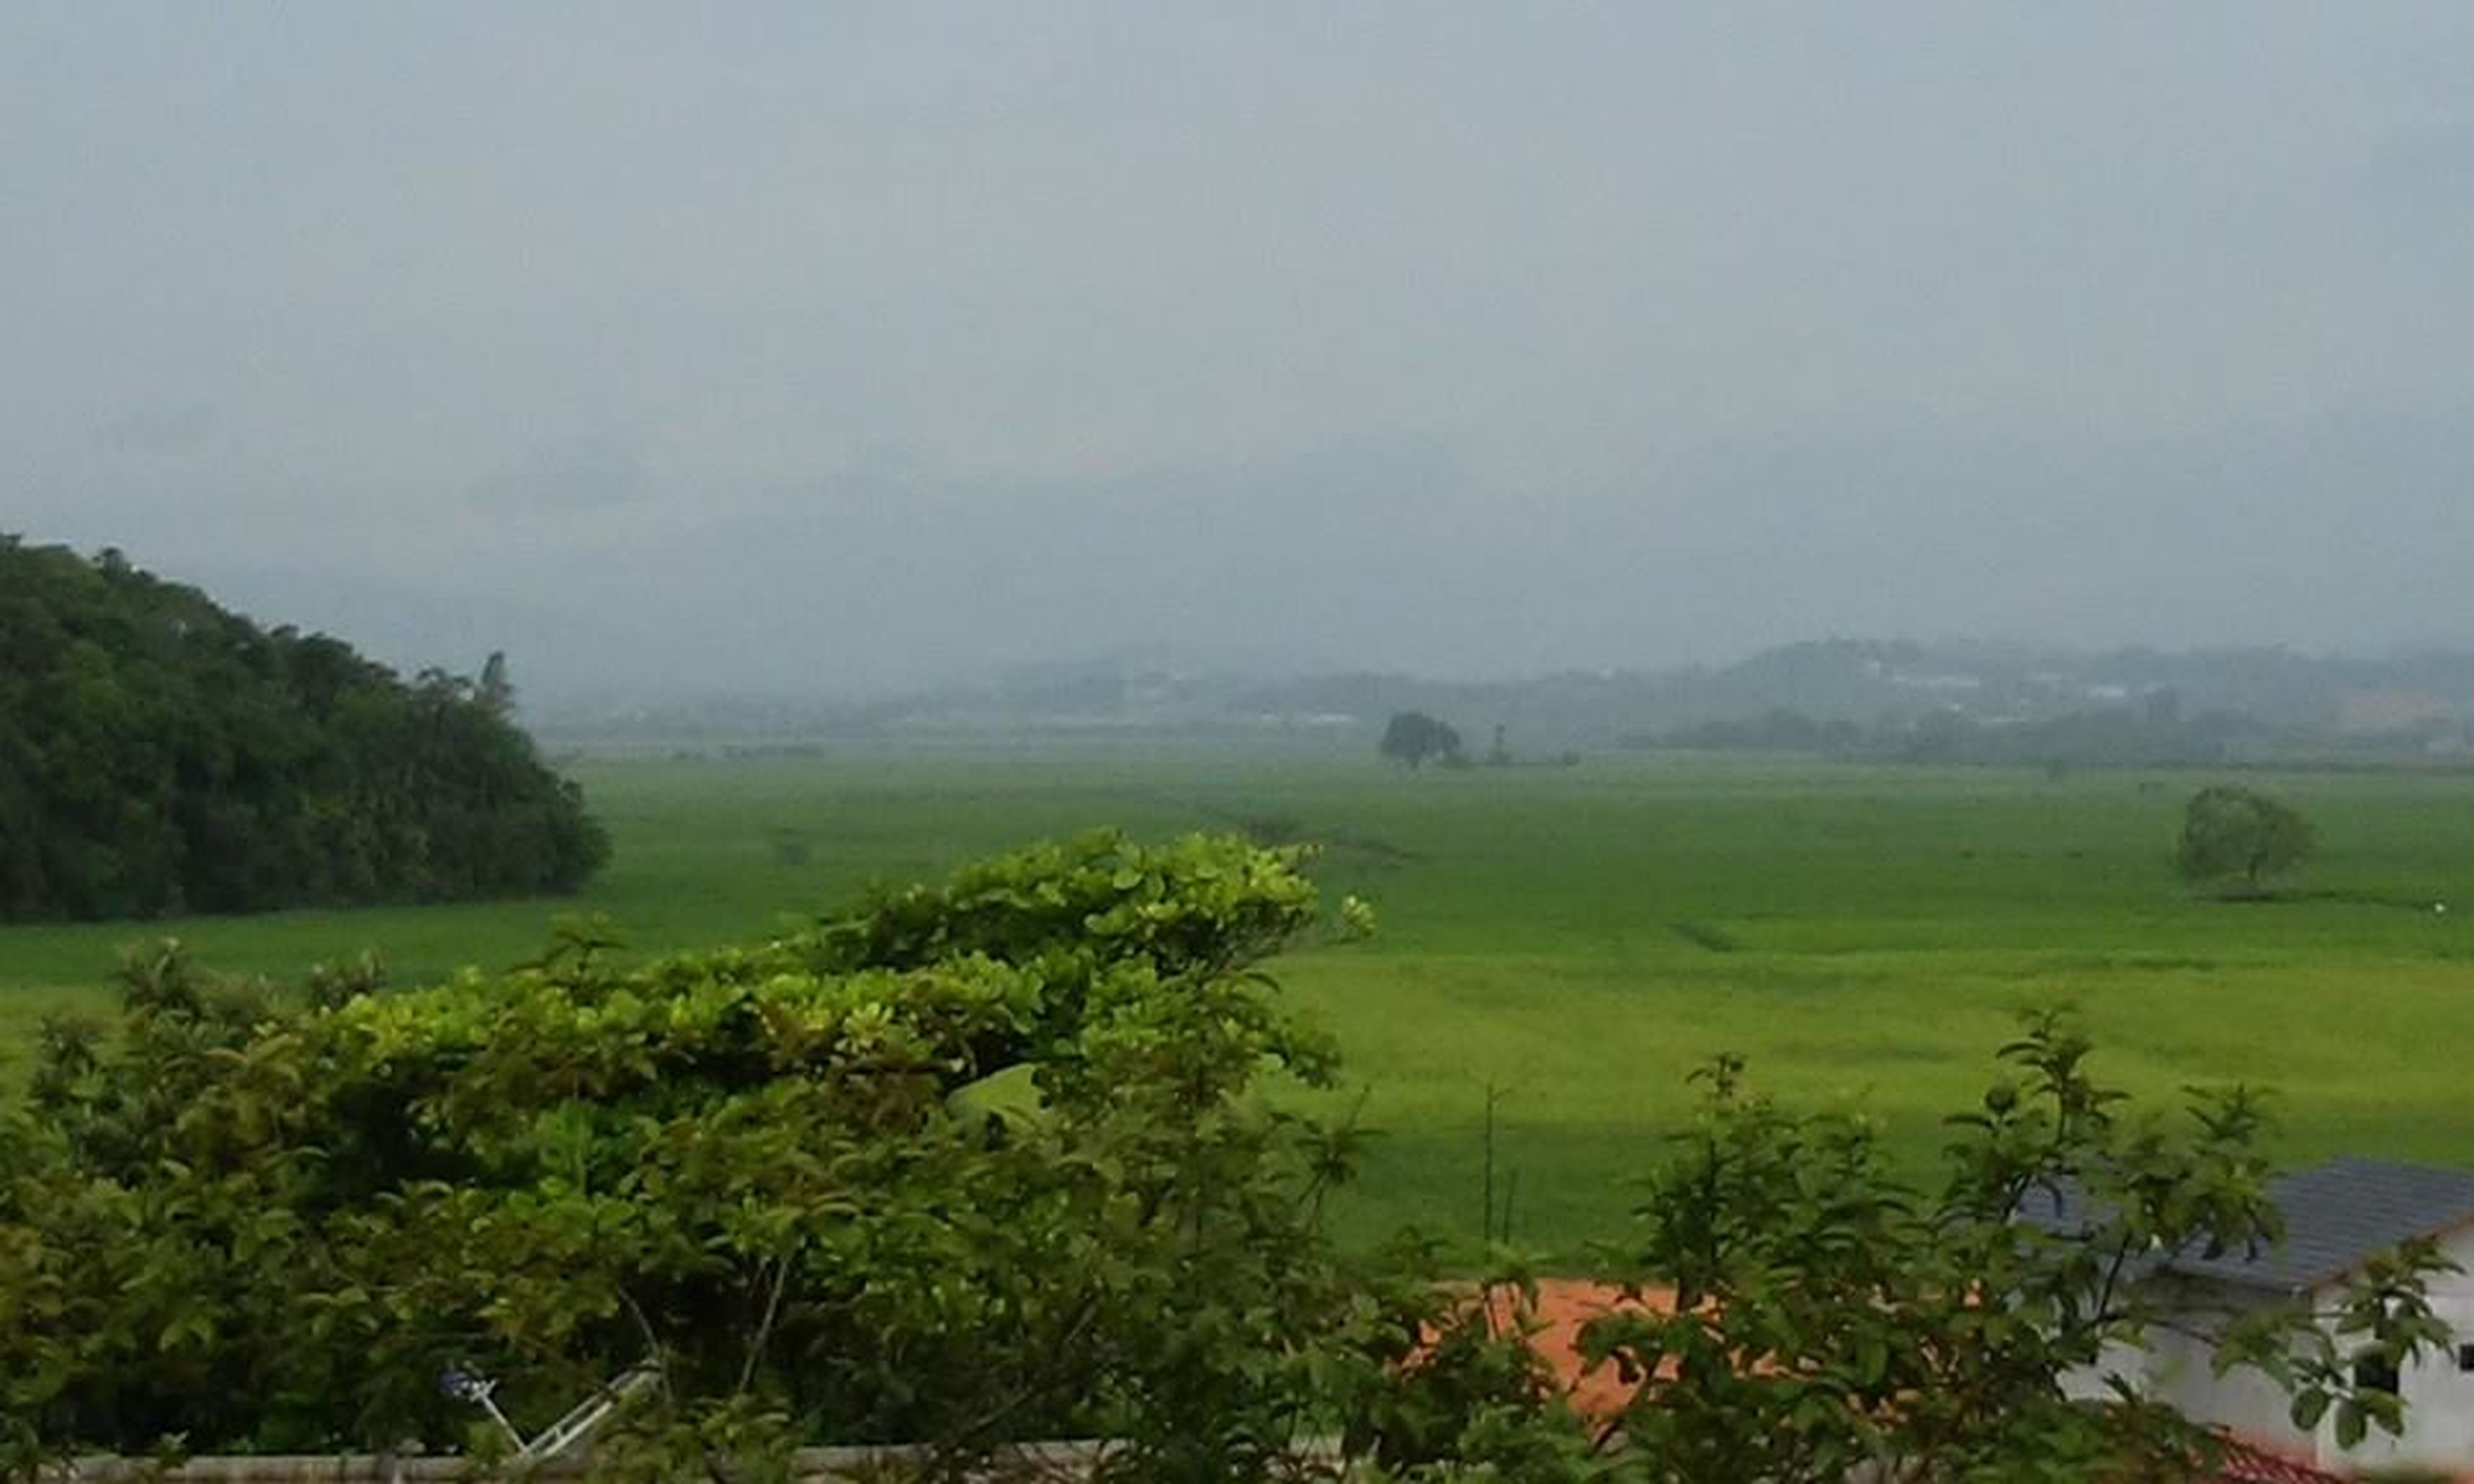 nature, tree, growth, beauty in nature, fog, landscape, sky, water, outdoors, scenics, no people, lush - description, day